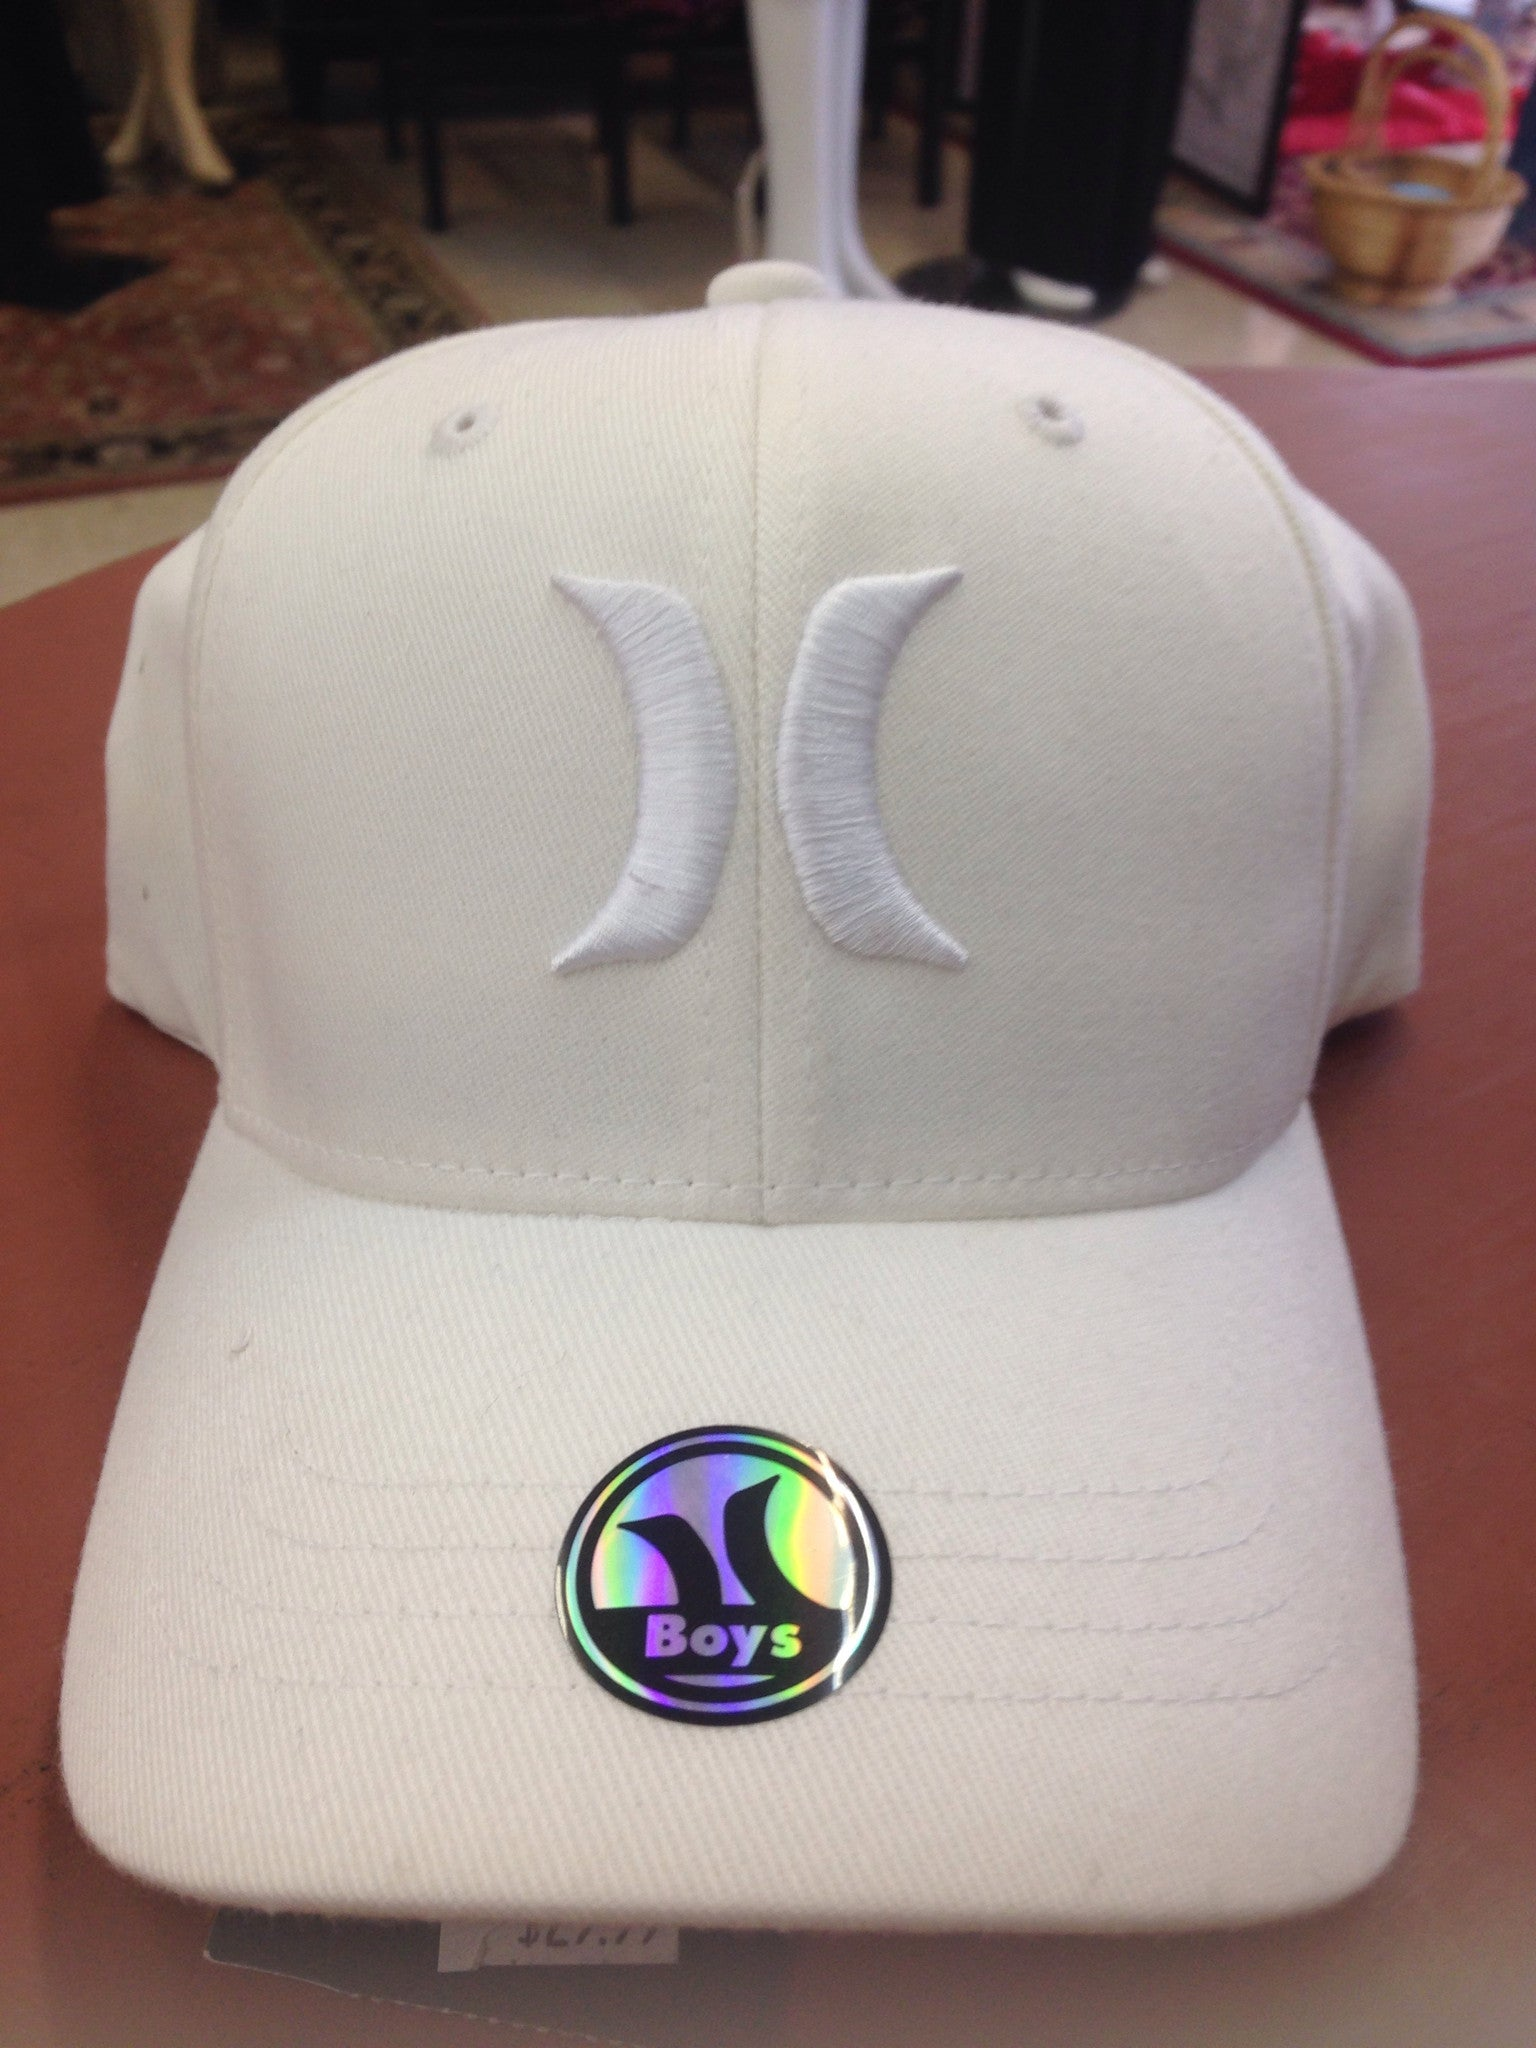 Boys size white hurley hat.